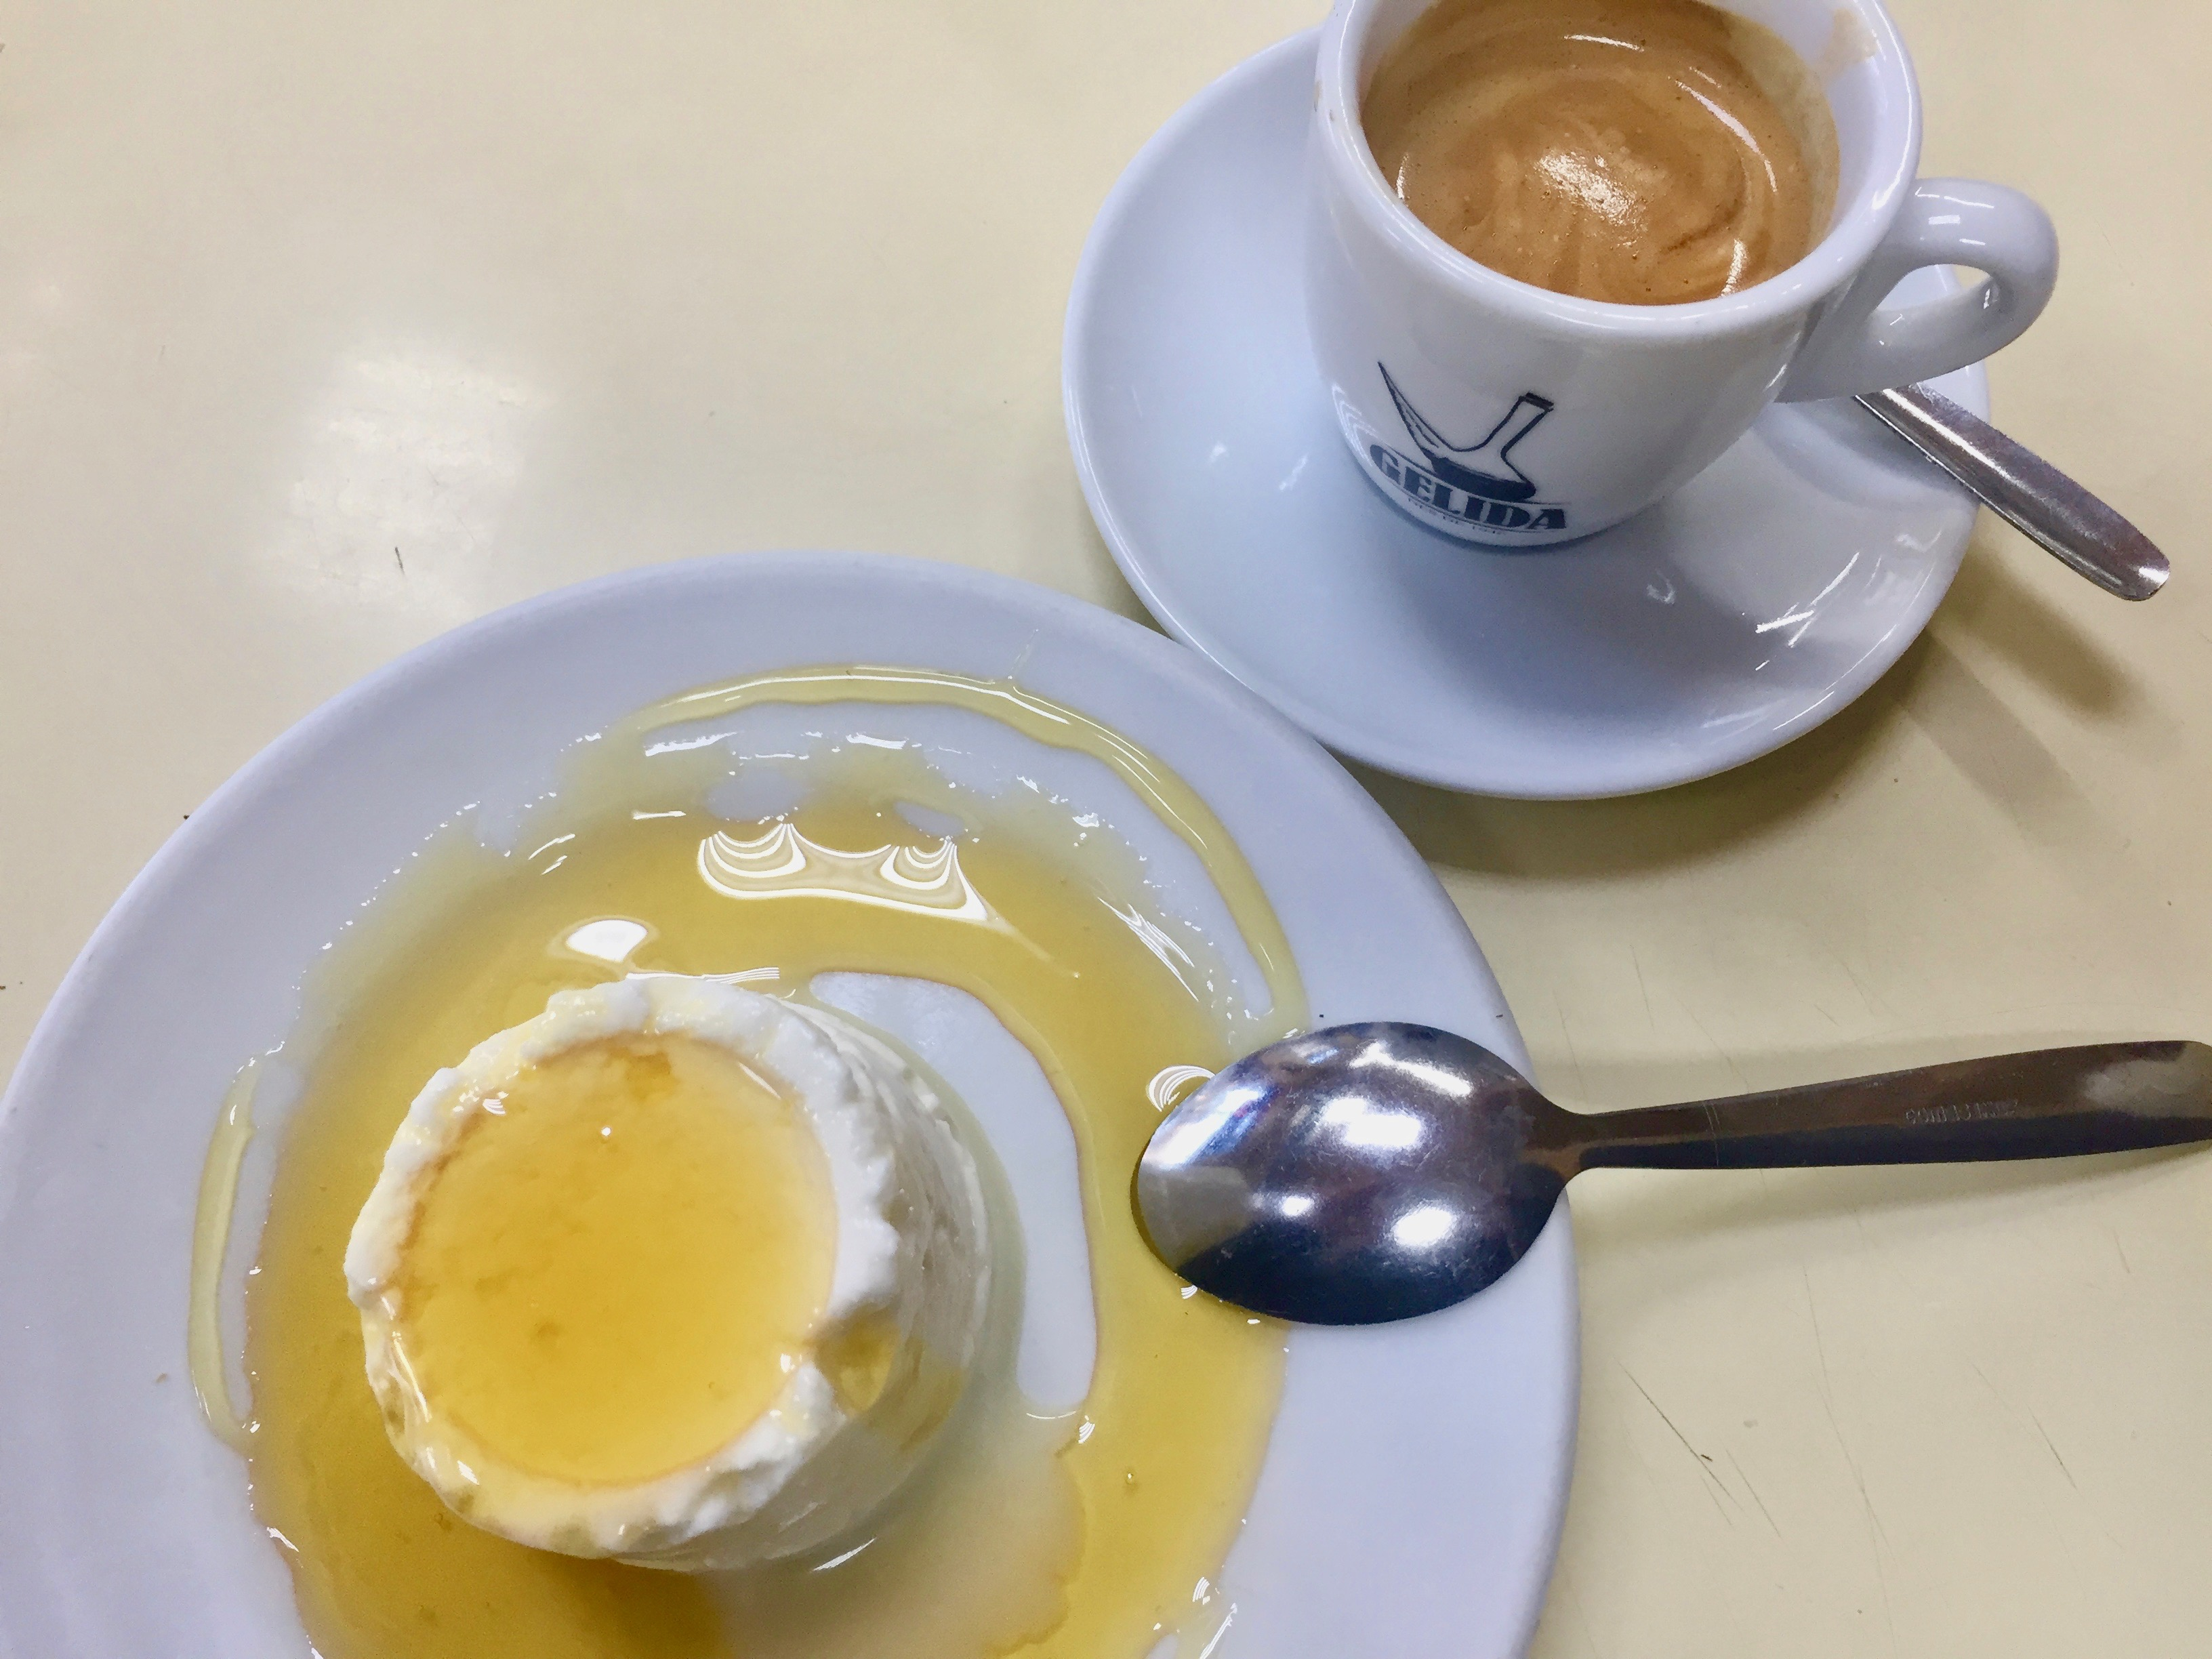 Coffee and mel i mato as served at Gelida, Barcelona